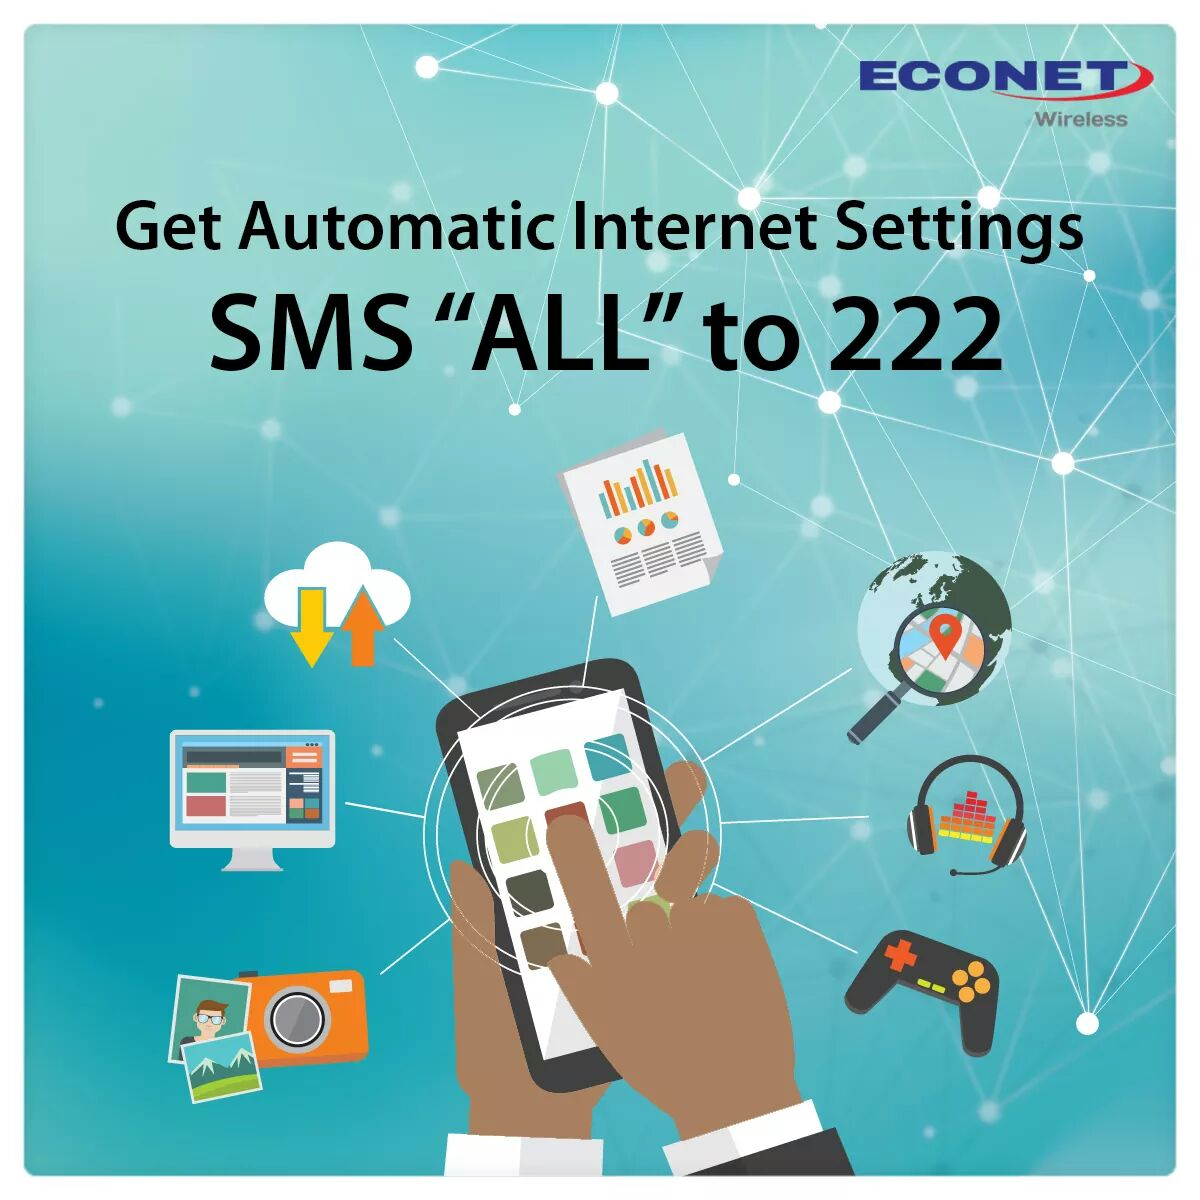 Econet Wireless On Twitter Got A New Smartphone Sms All To 222 To Receive Automatic Internet Settings For Free Unlock The Power Of Your Device Today Https T Co Jewl0o9c9i